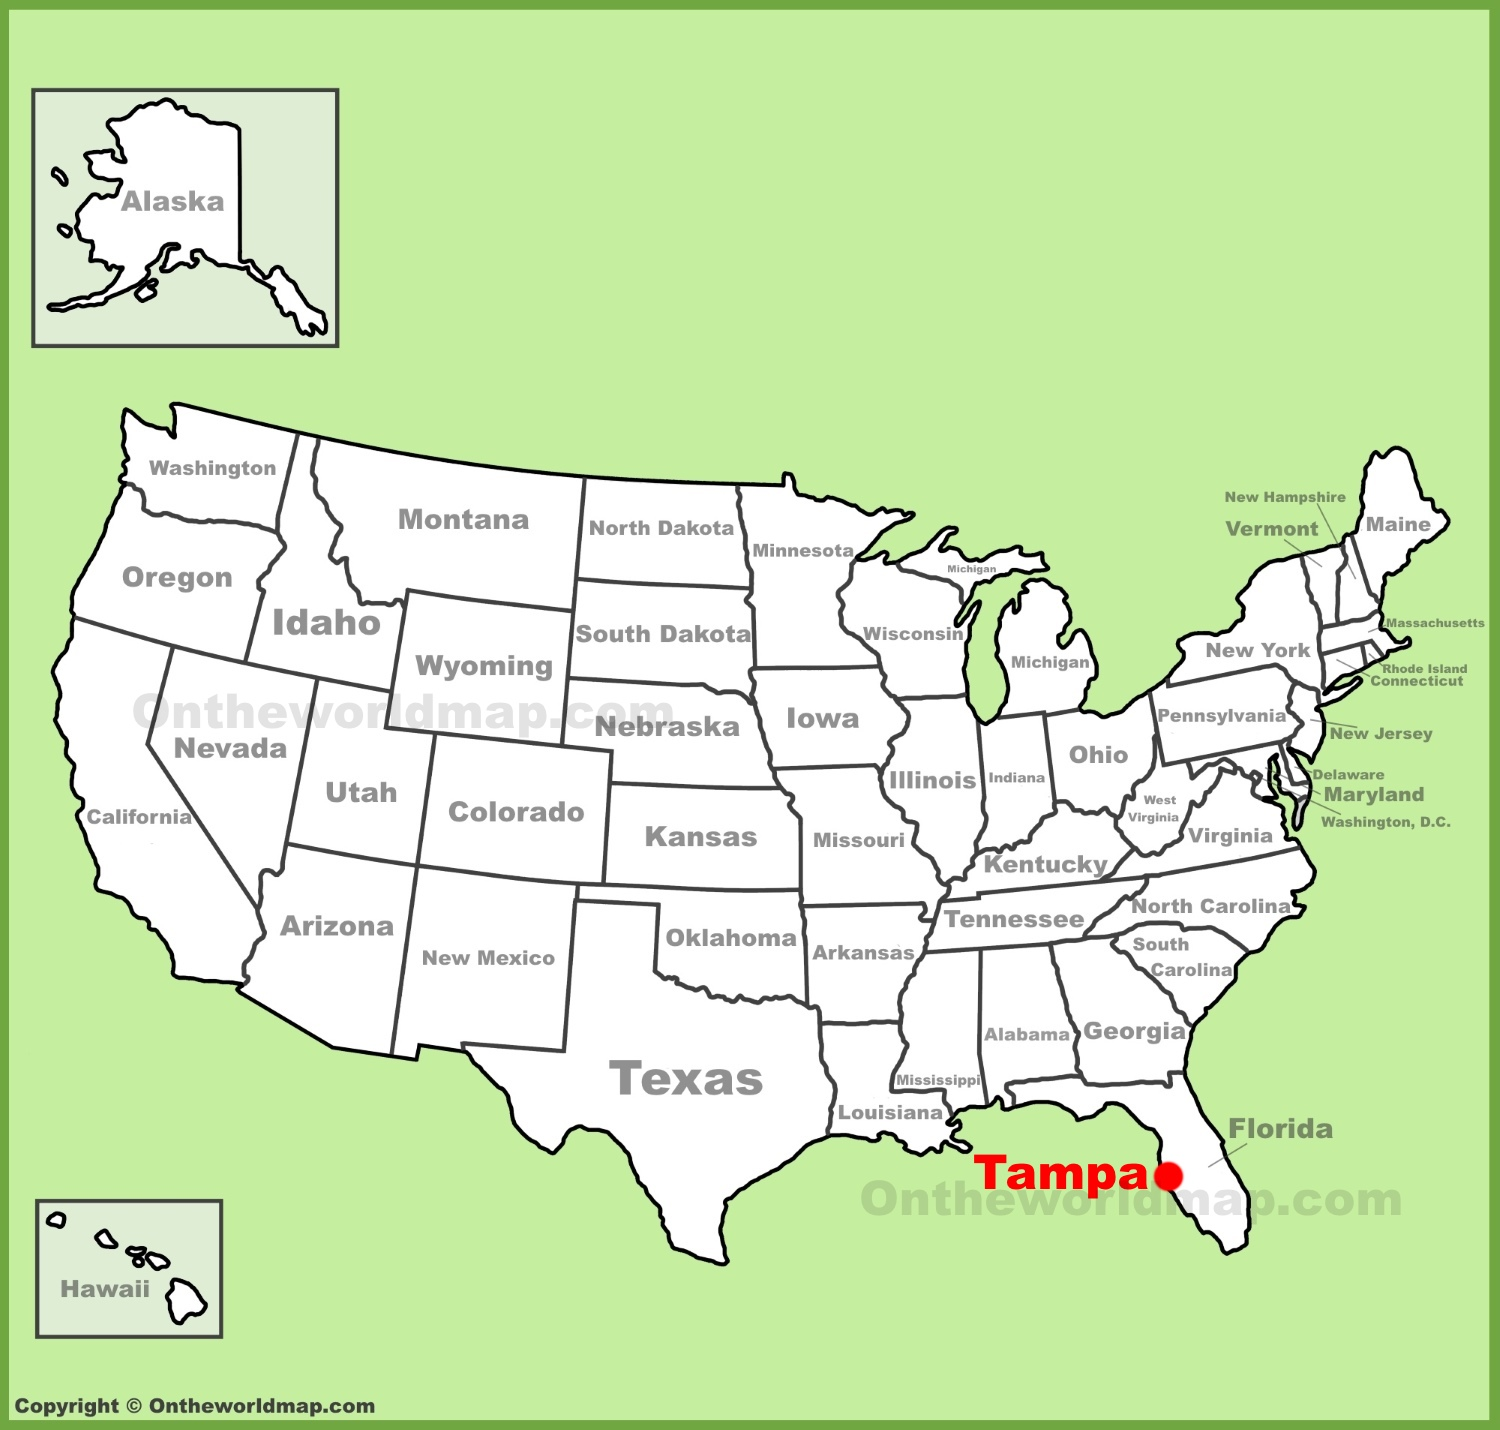 Tampa Location On The US Map - Where is tampa on map of us